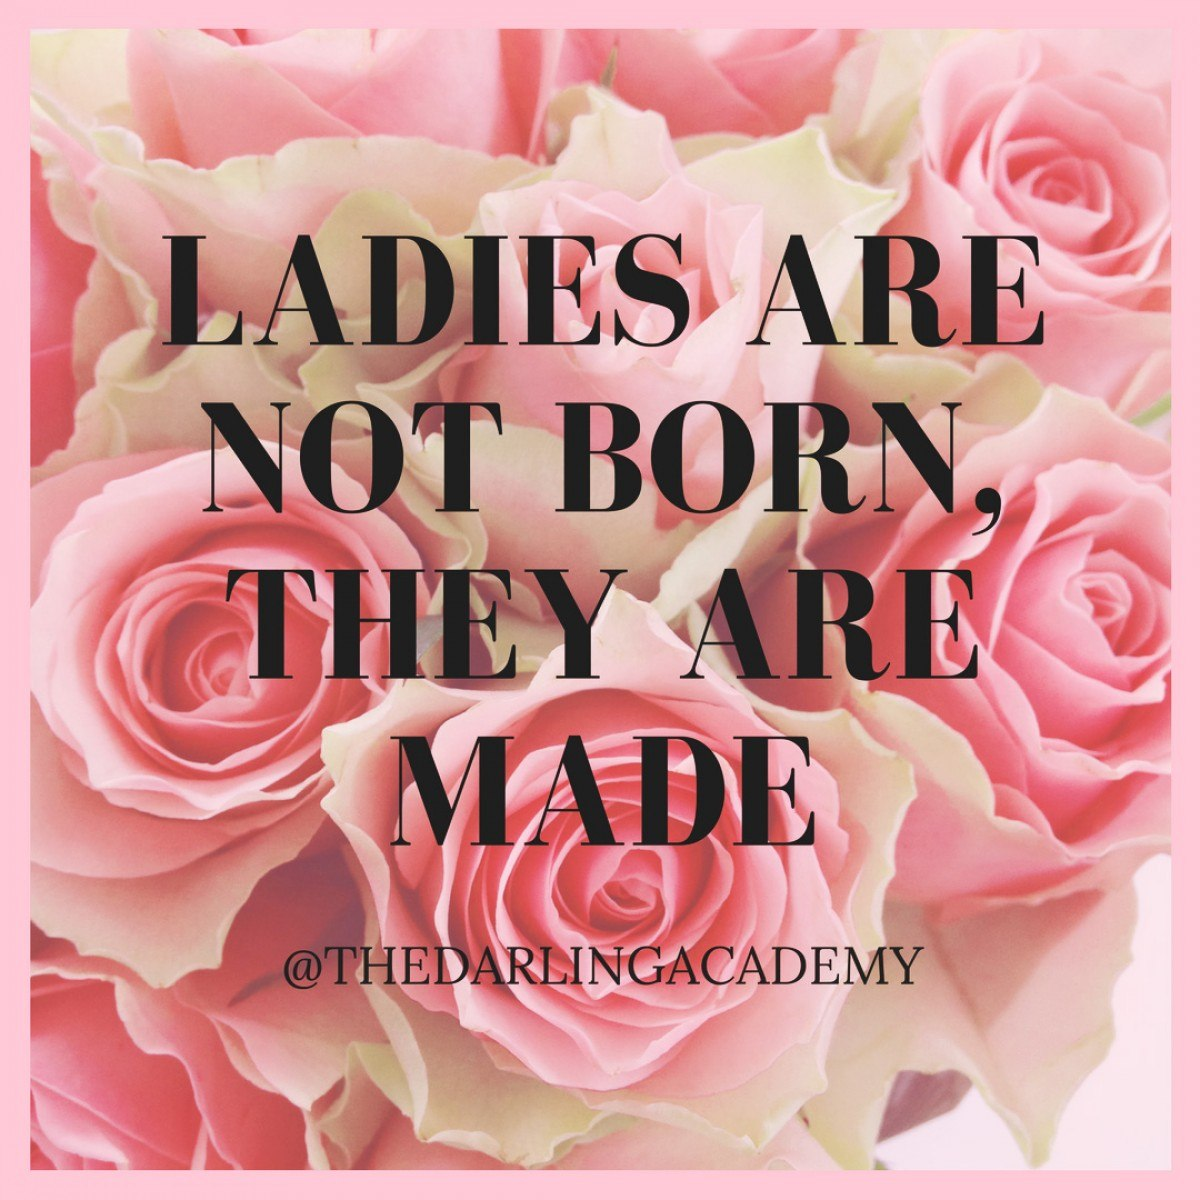 Ladies are not born, they are made